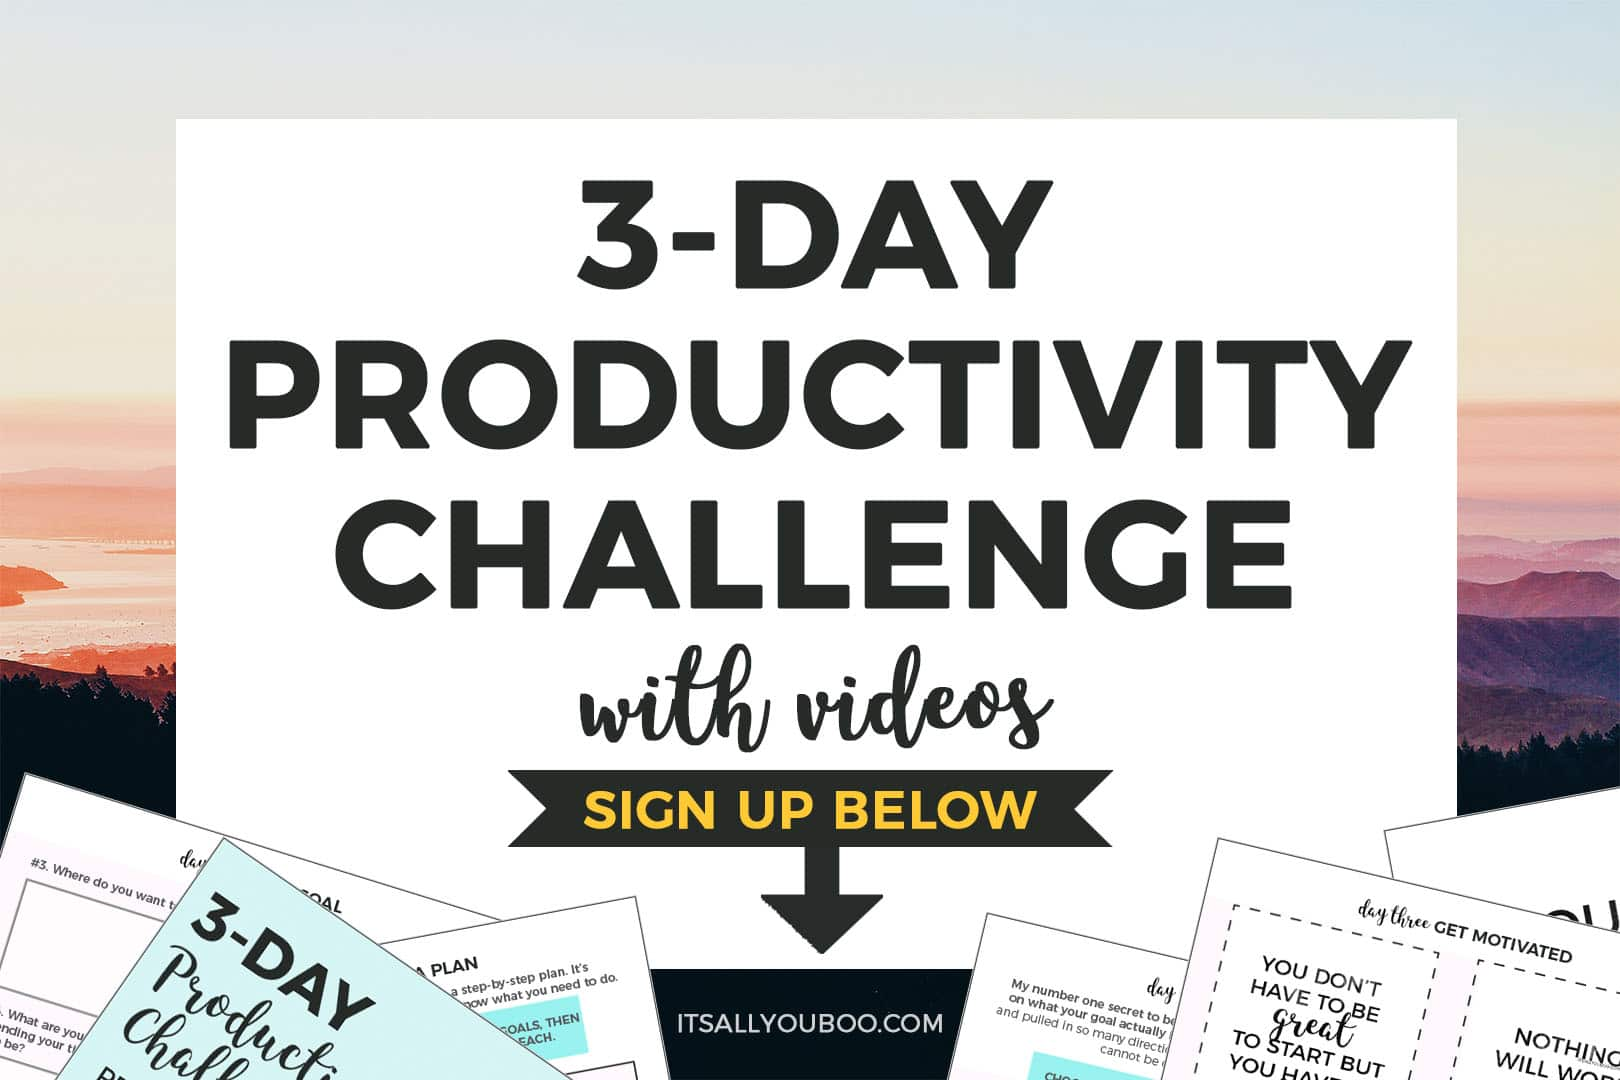 Sign up for FREE 3-Day Productivity Challenge